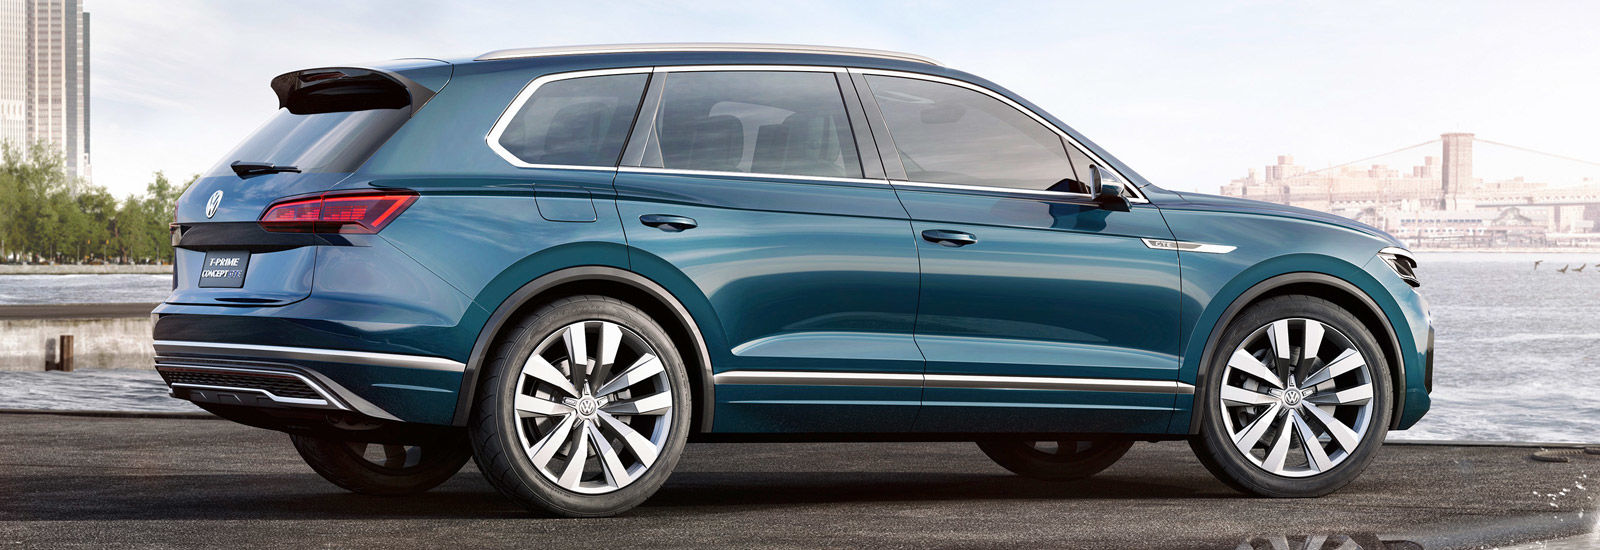 Cars For Sale Vw Touareg